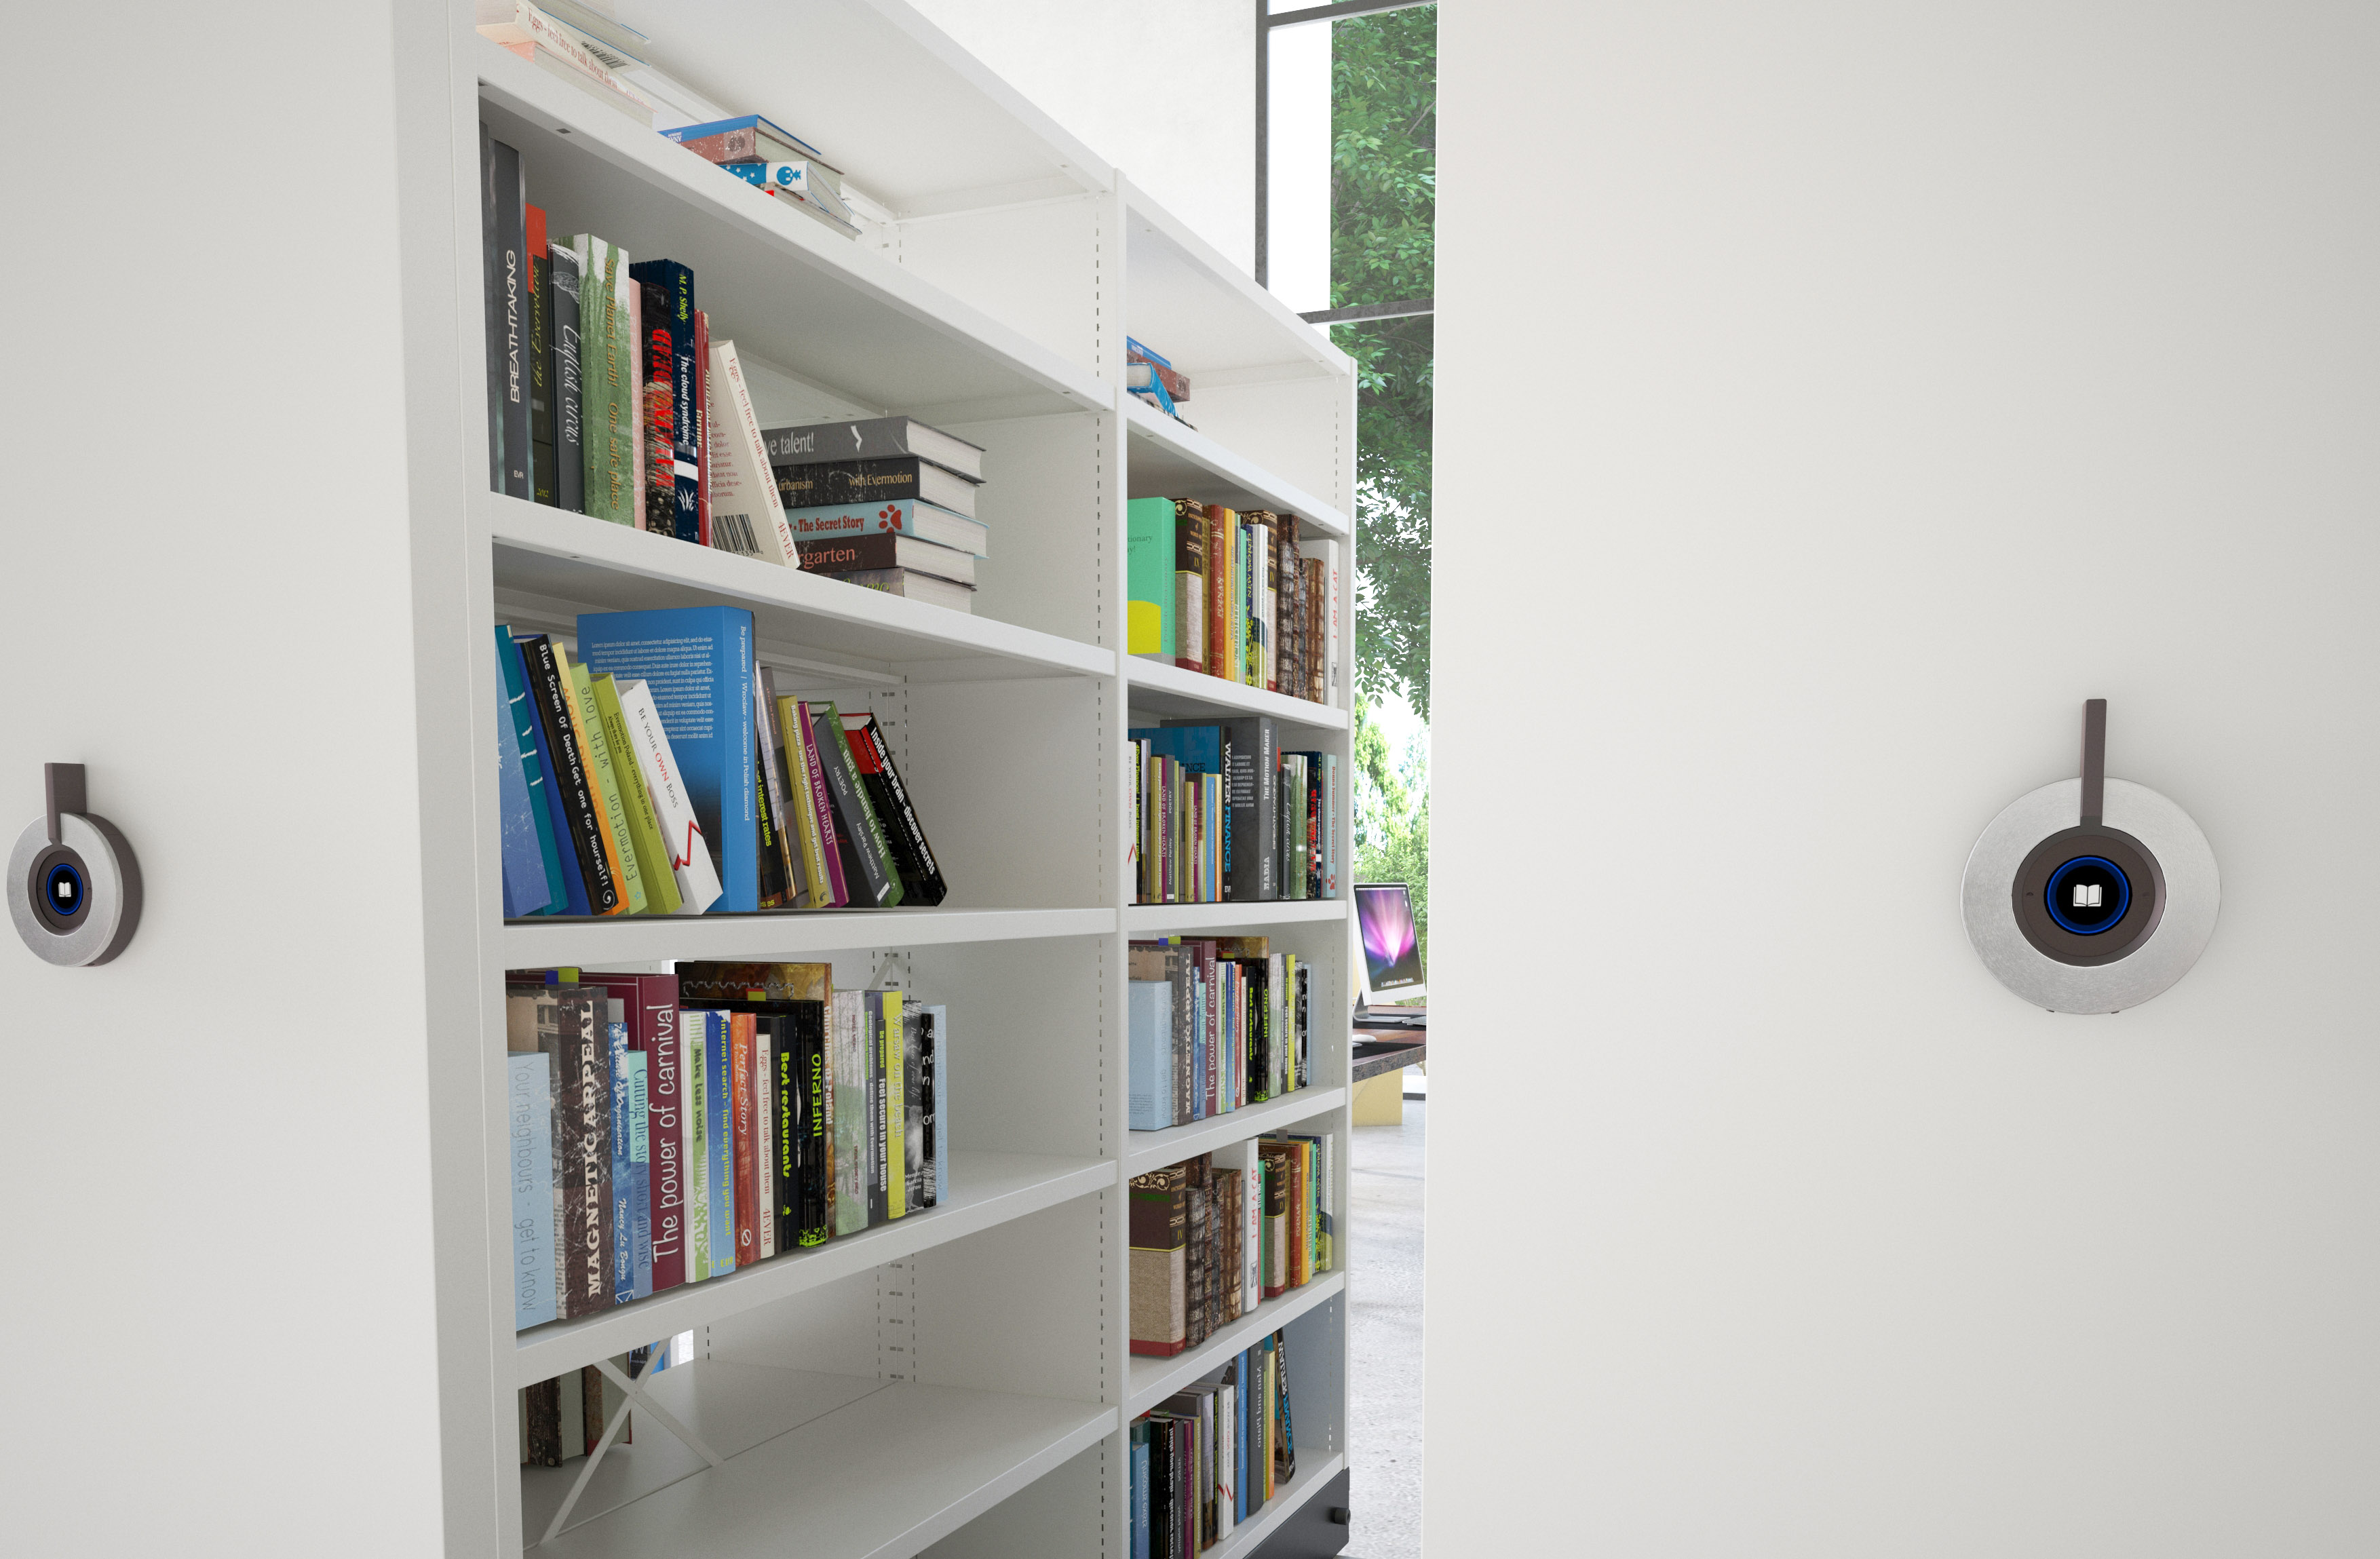 Library_mobile shelving_light